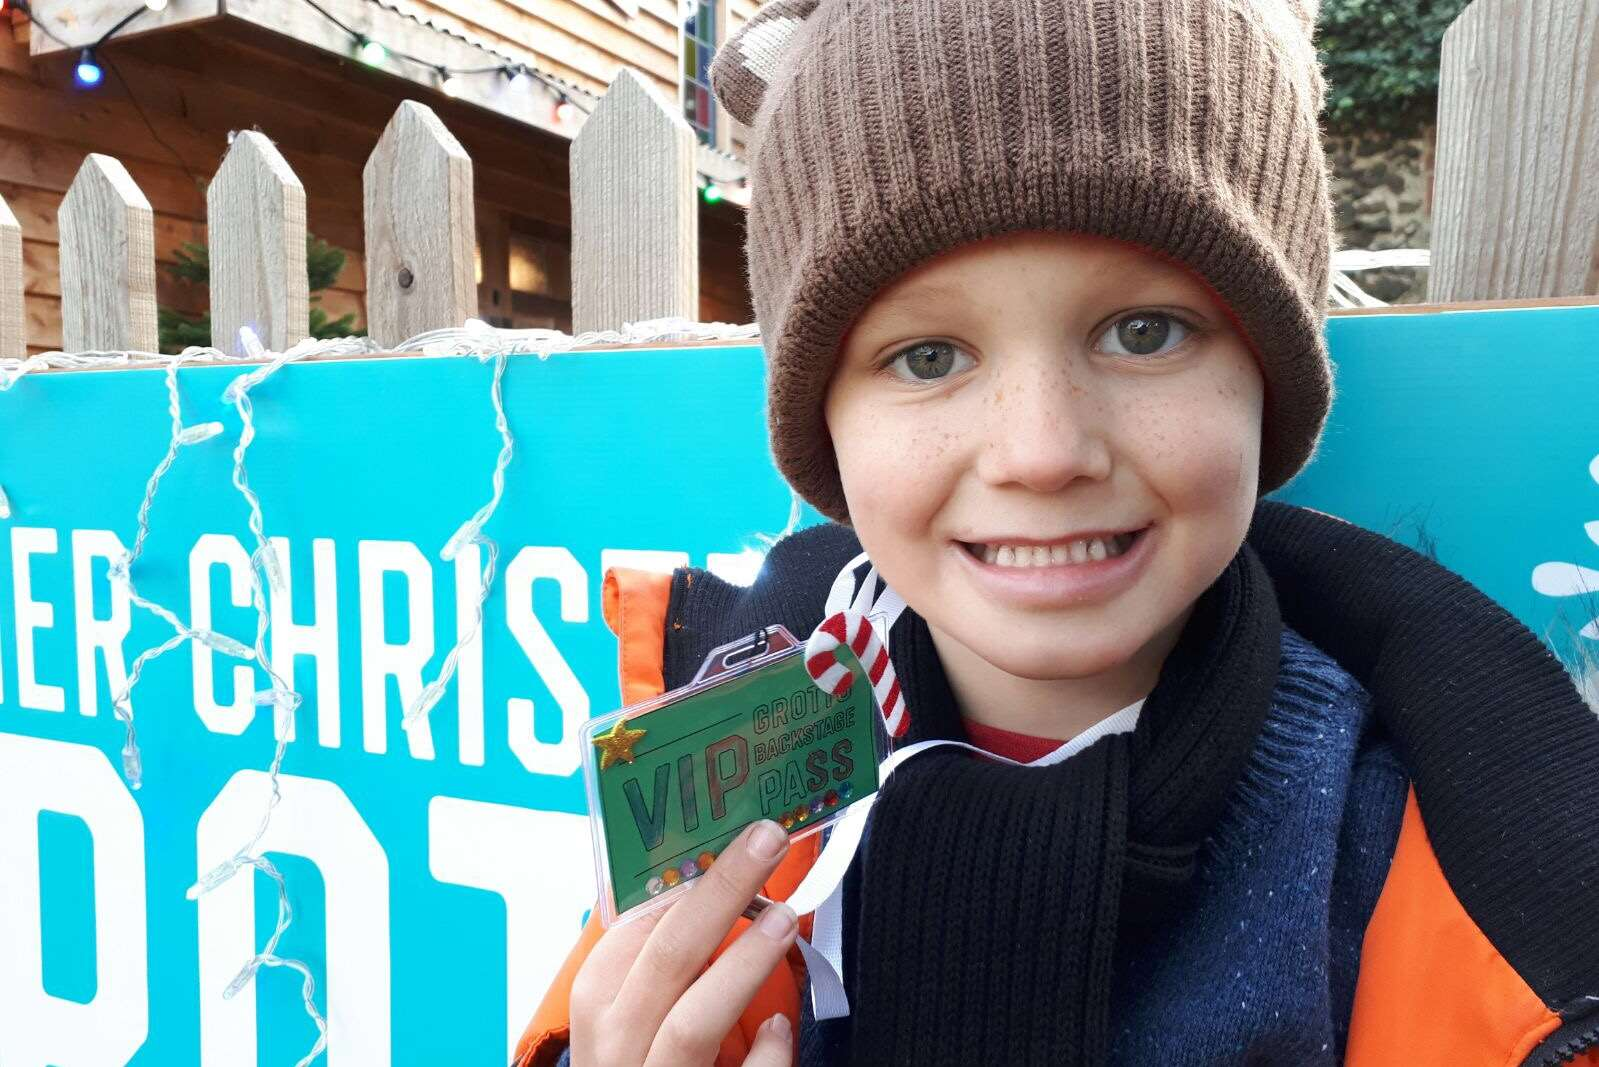 Oscar and his festive VIP pass